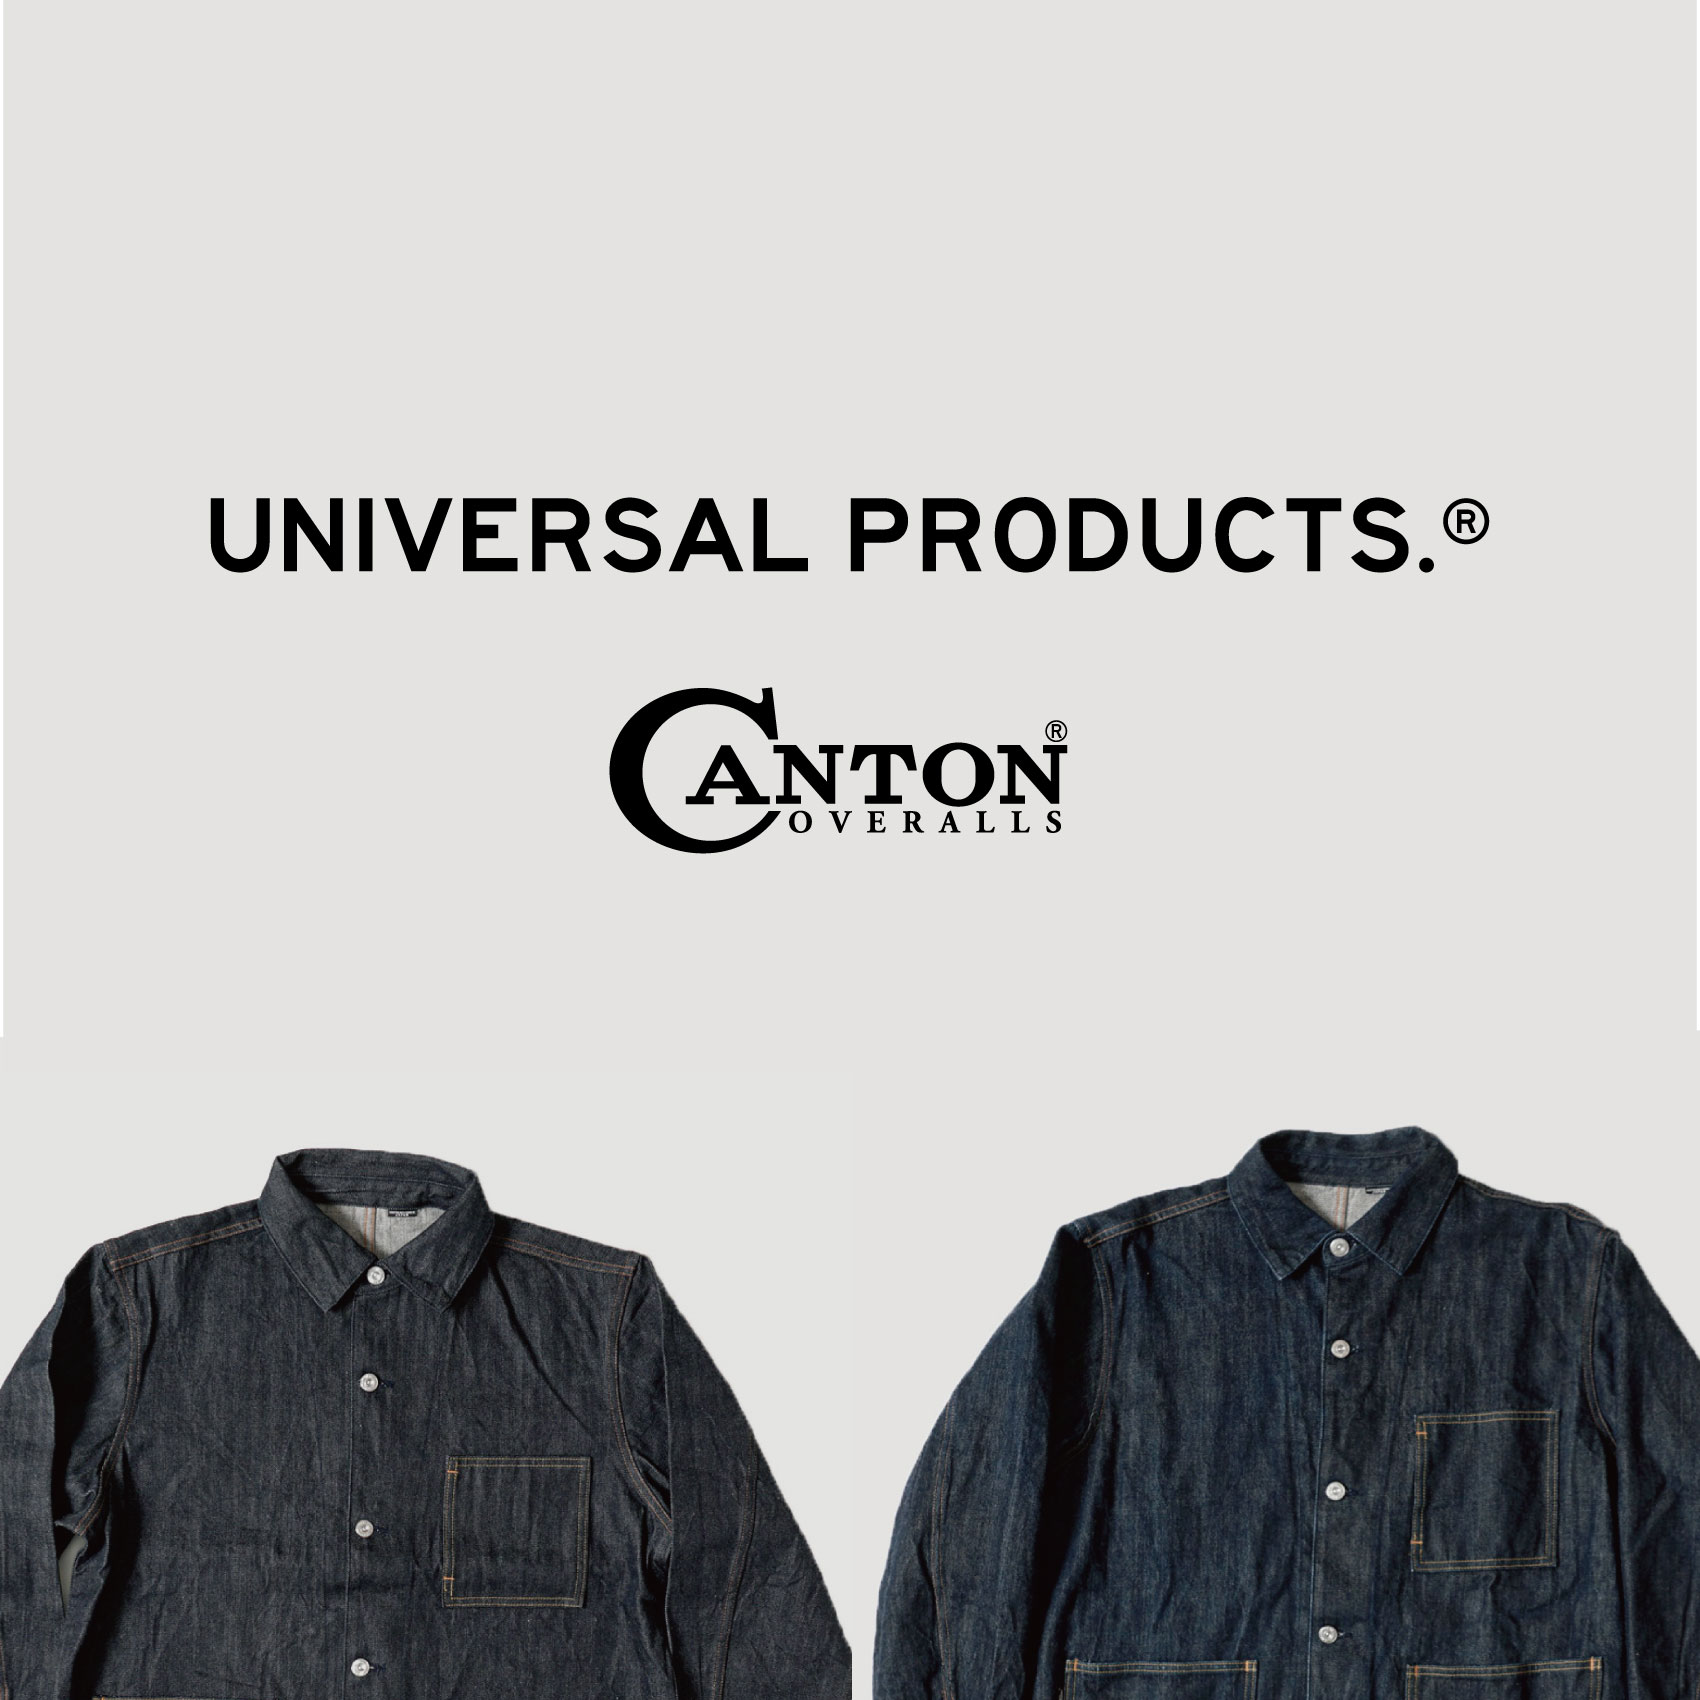 CANTON DENIM XX